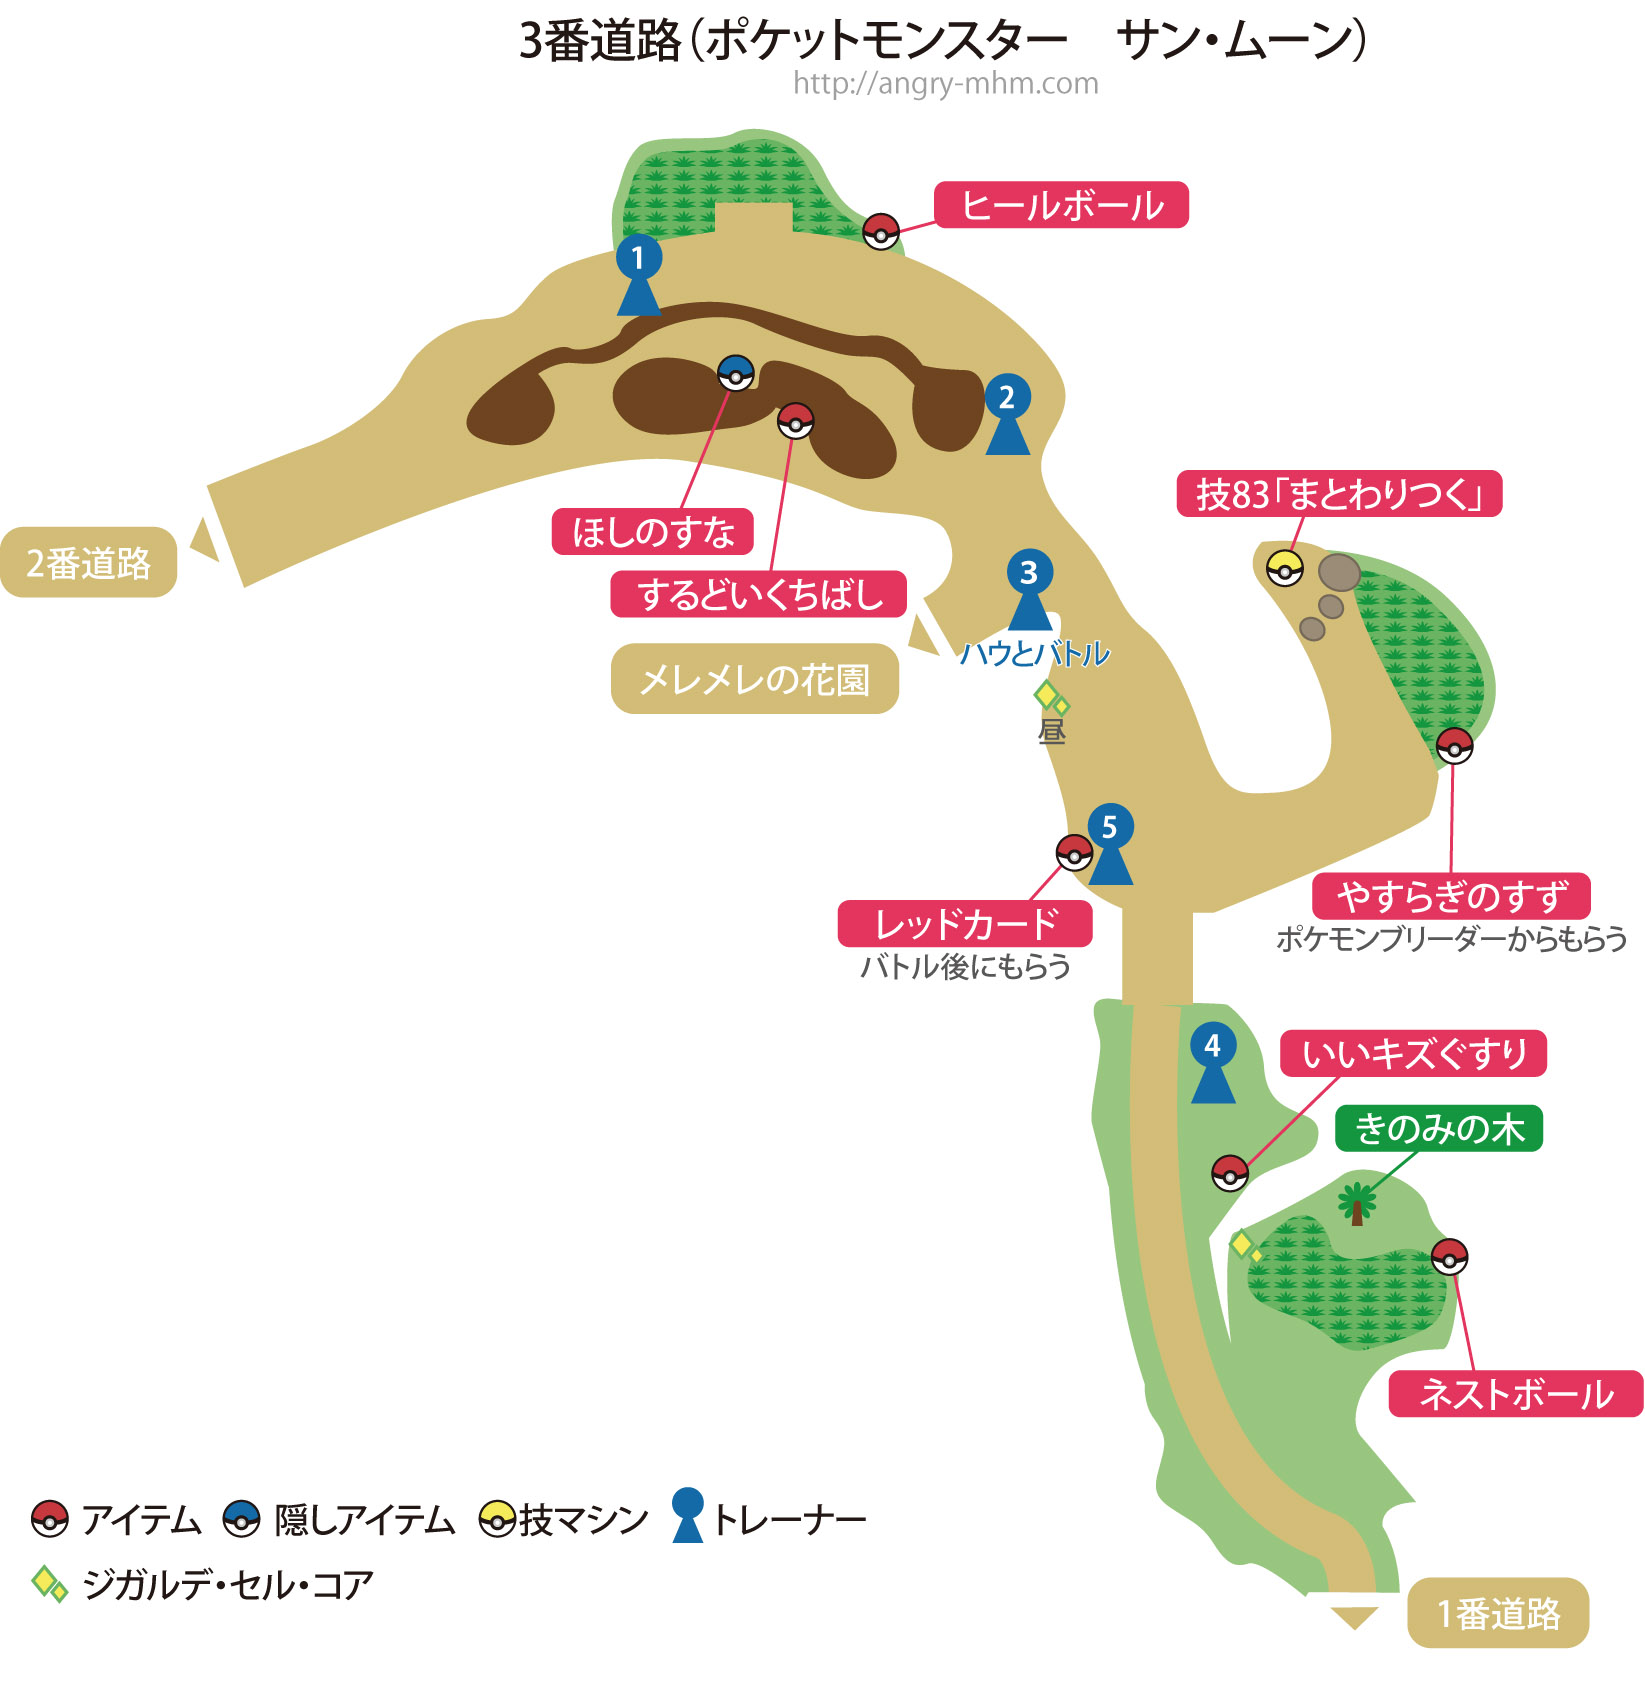 map-route-3